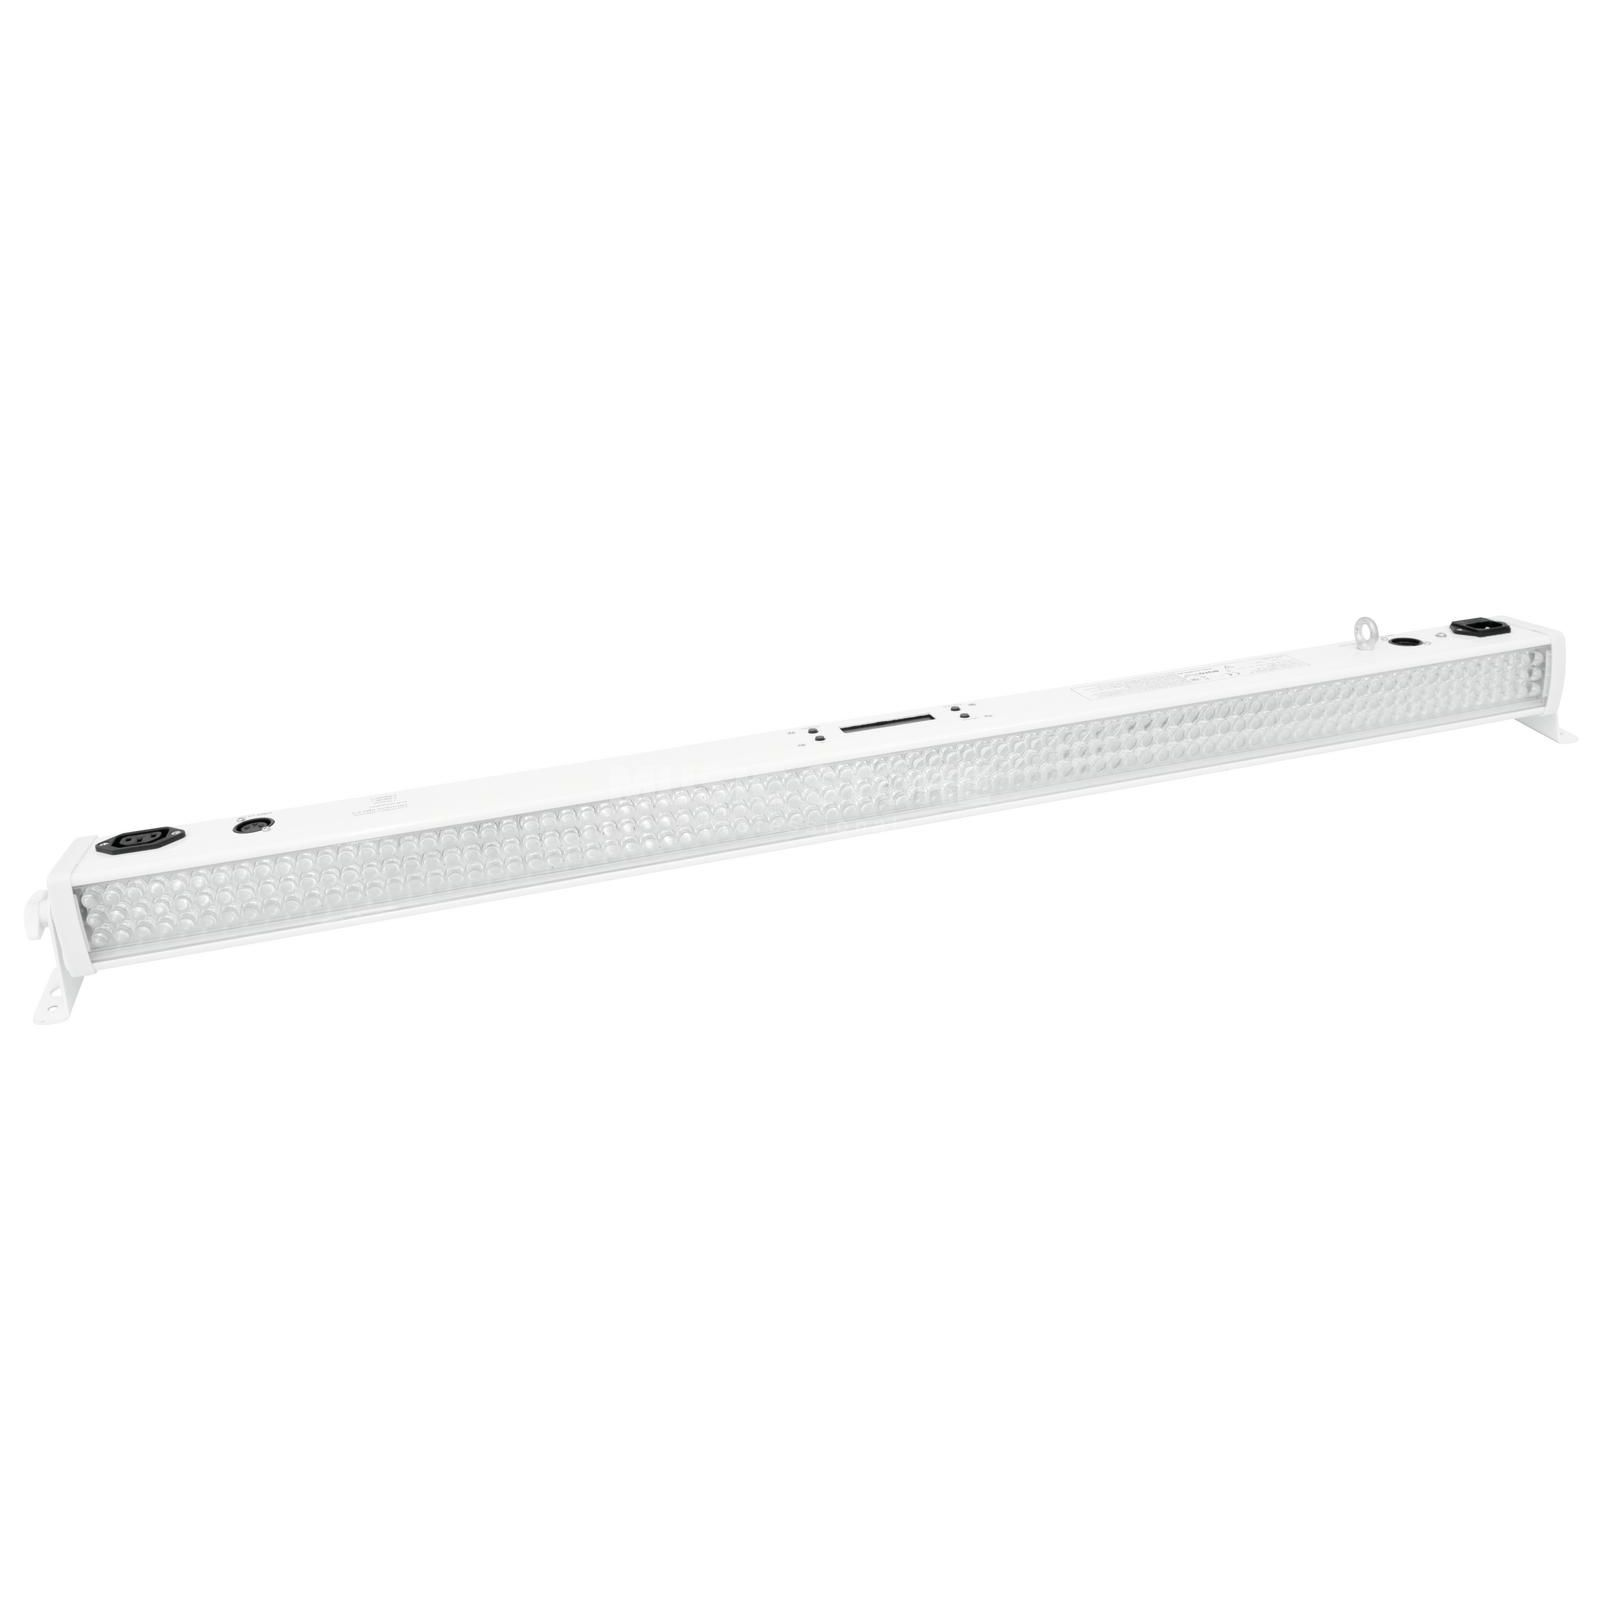 Eurolite LED Bar RGBA 252/10 indoor 20° weiß Produktbild